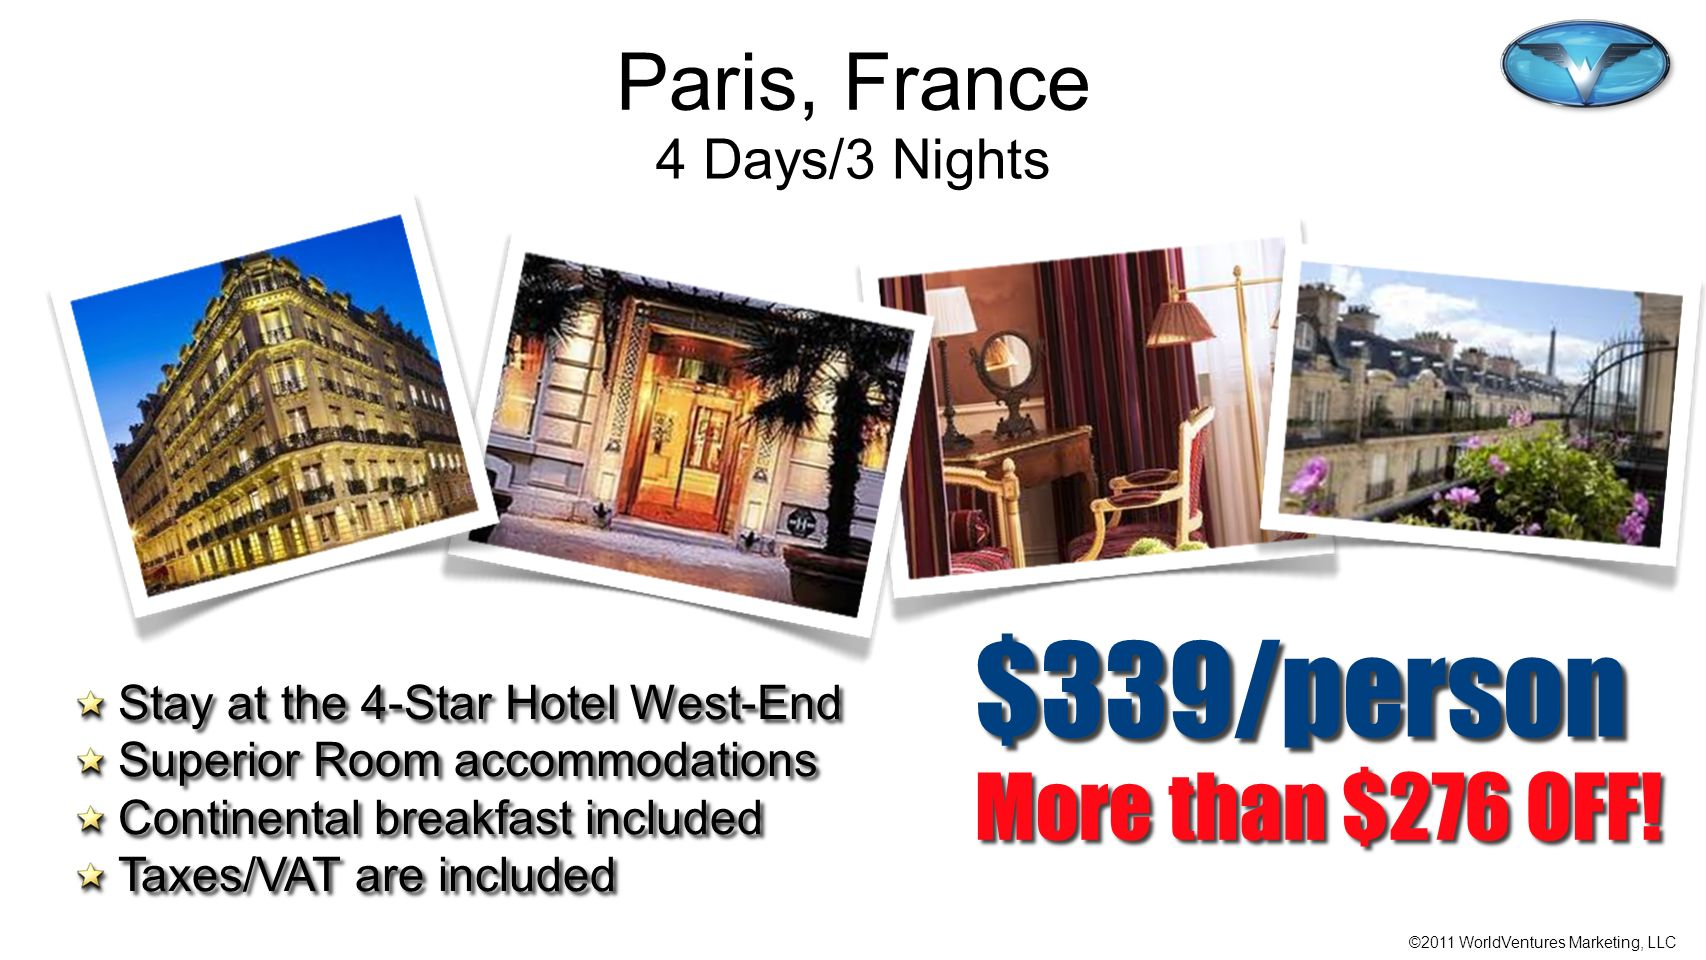 $339/person More than $276 OFF! Paris, France 4 Days/3 Nights